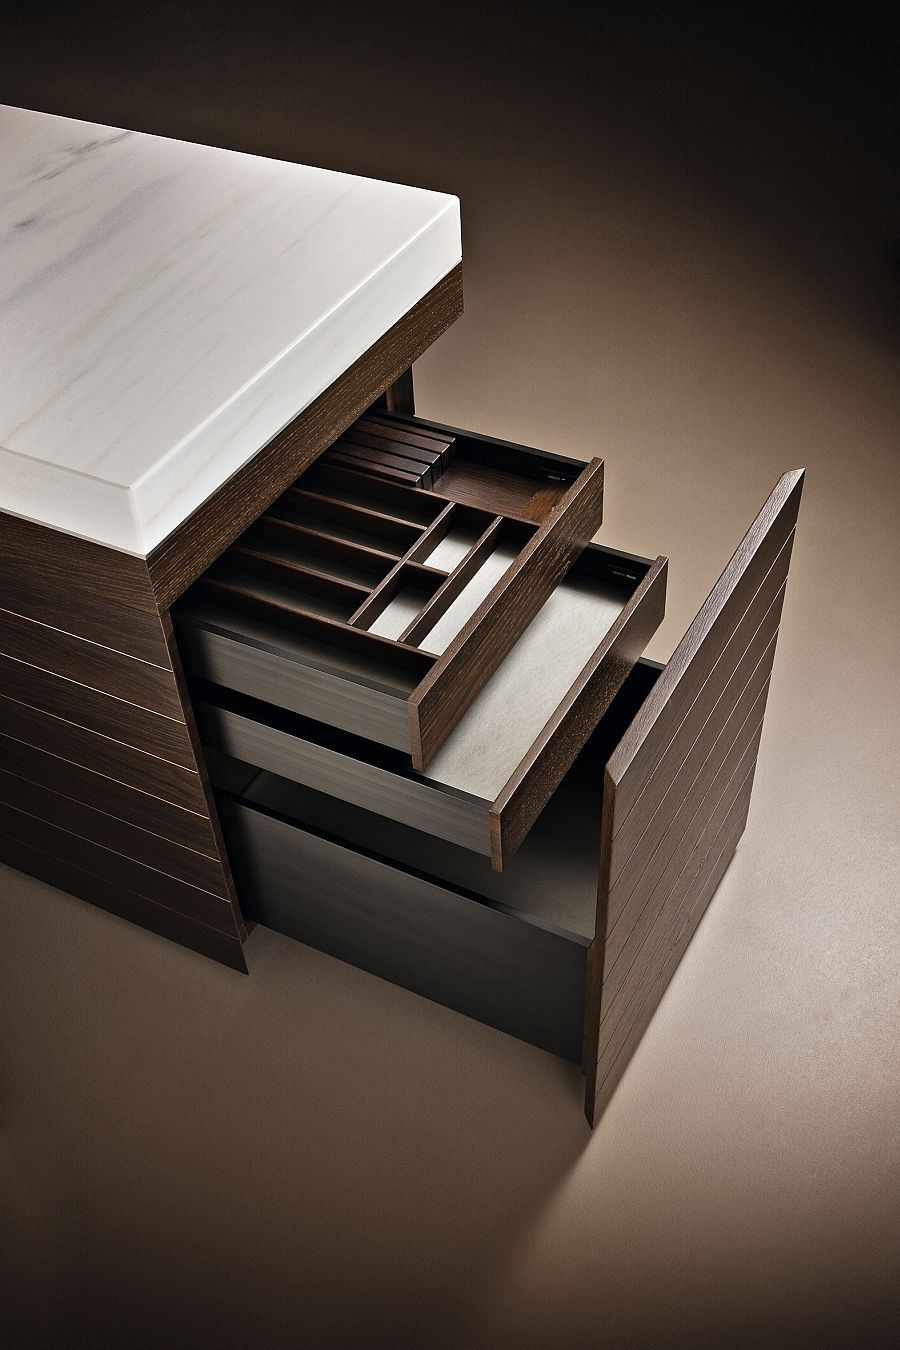 Smart hidden drawers for kitchen